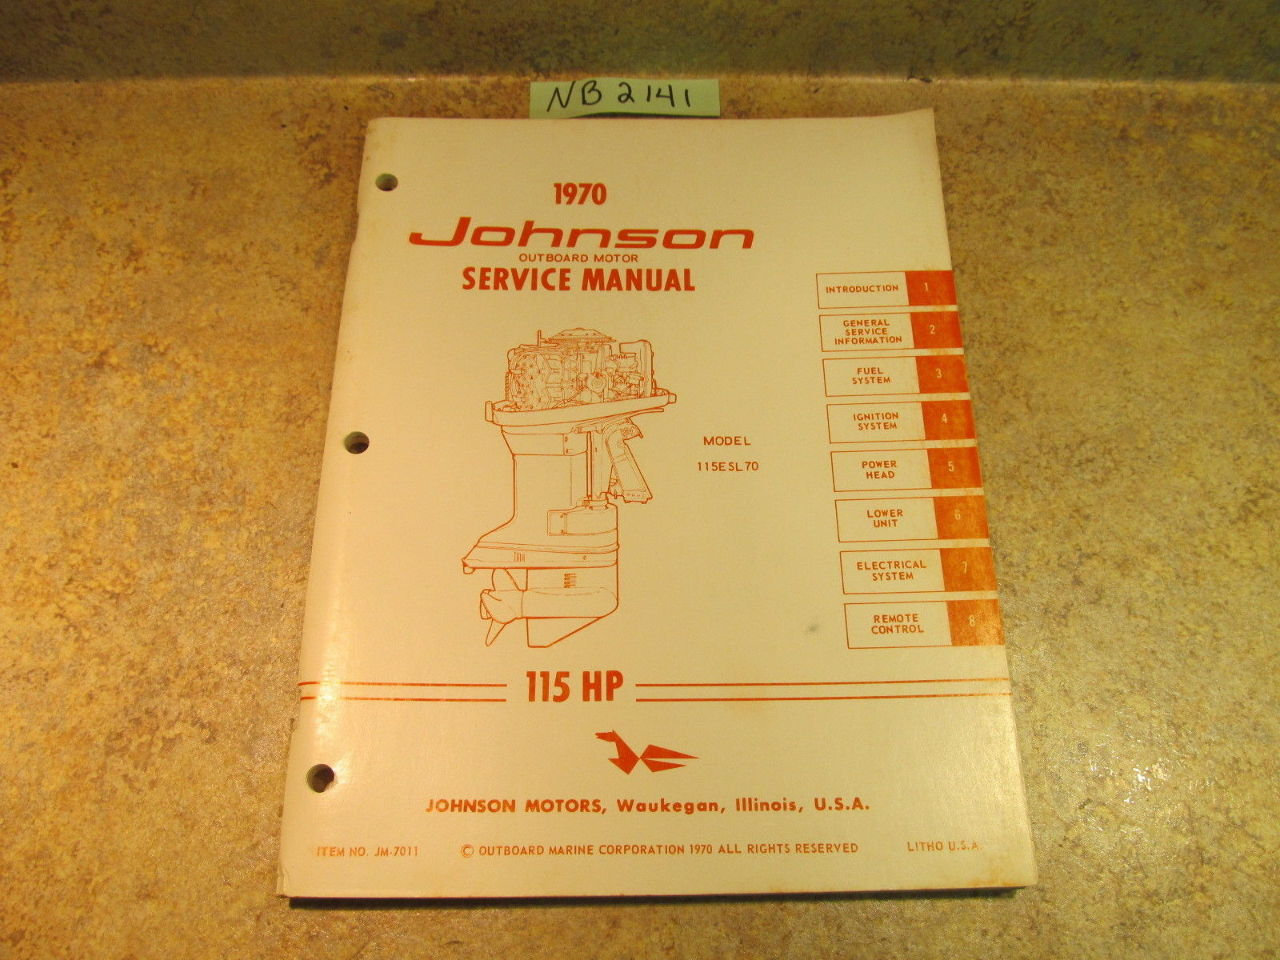 Johnson 115 Hp Outboard Motor Manual 1986 Evinrude 90 Wiring Diagram Free Picture